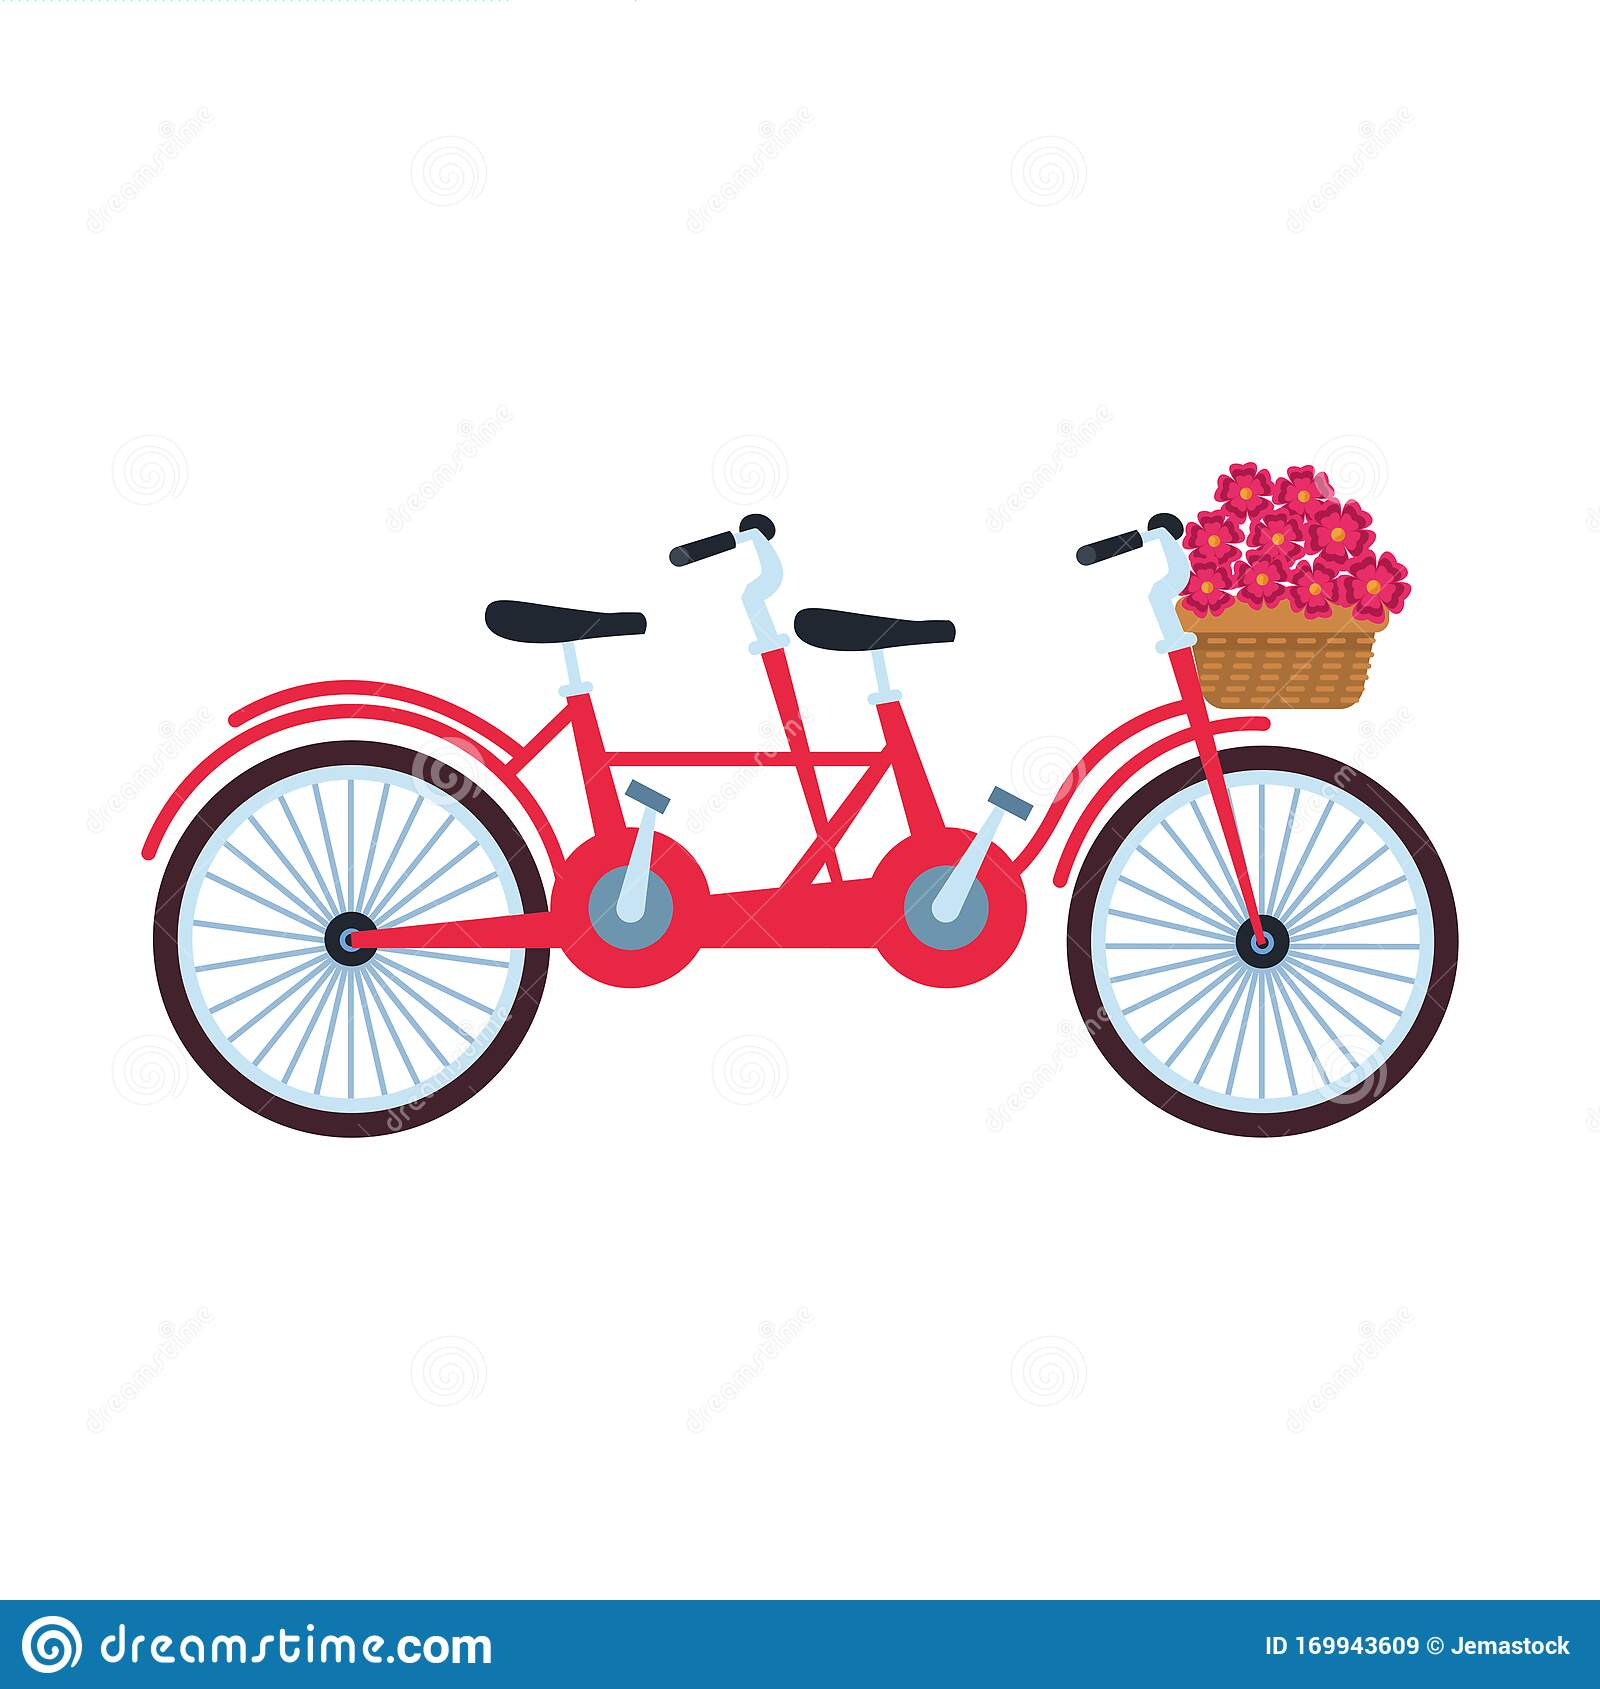 Classic Double Bike With Basket With Flowers, Colorful ...